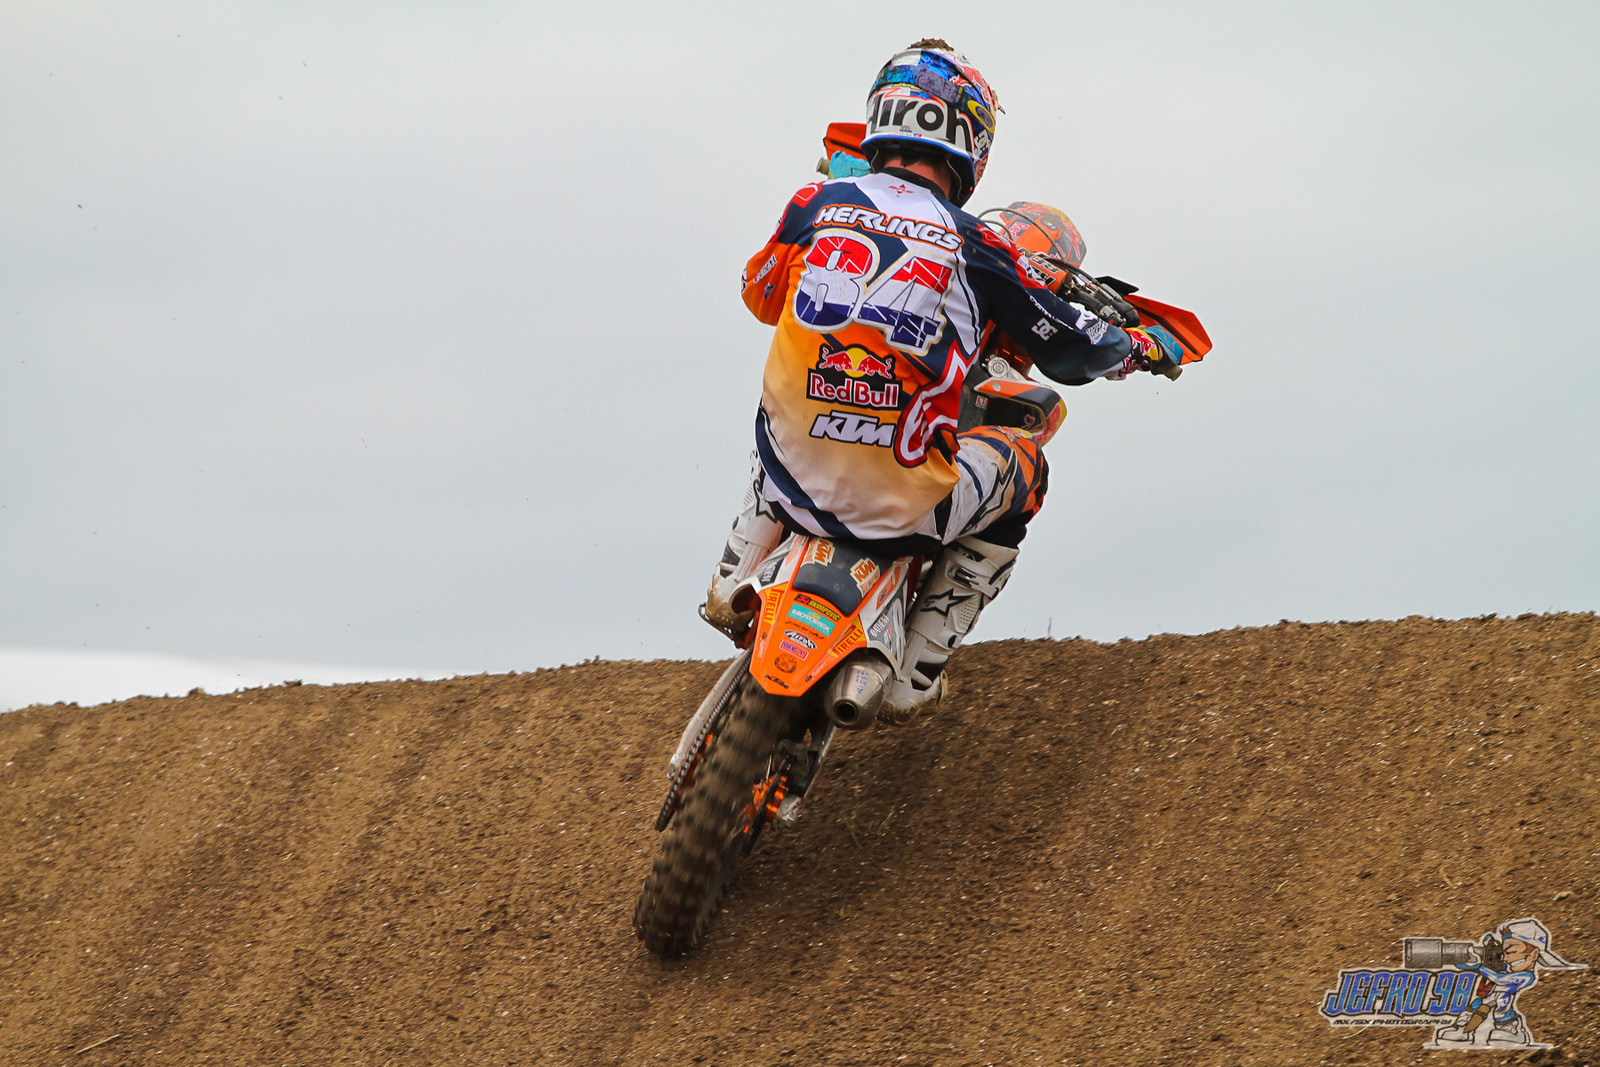 Jeffrey Herlings - Photo Gallery: MXGP of Great Britain - Motocross Pictures - Vital MX